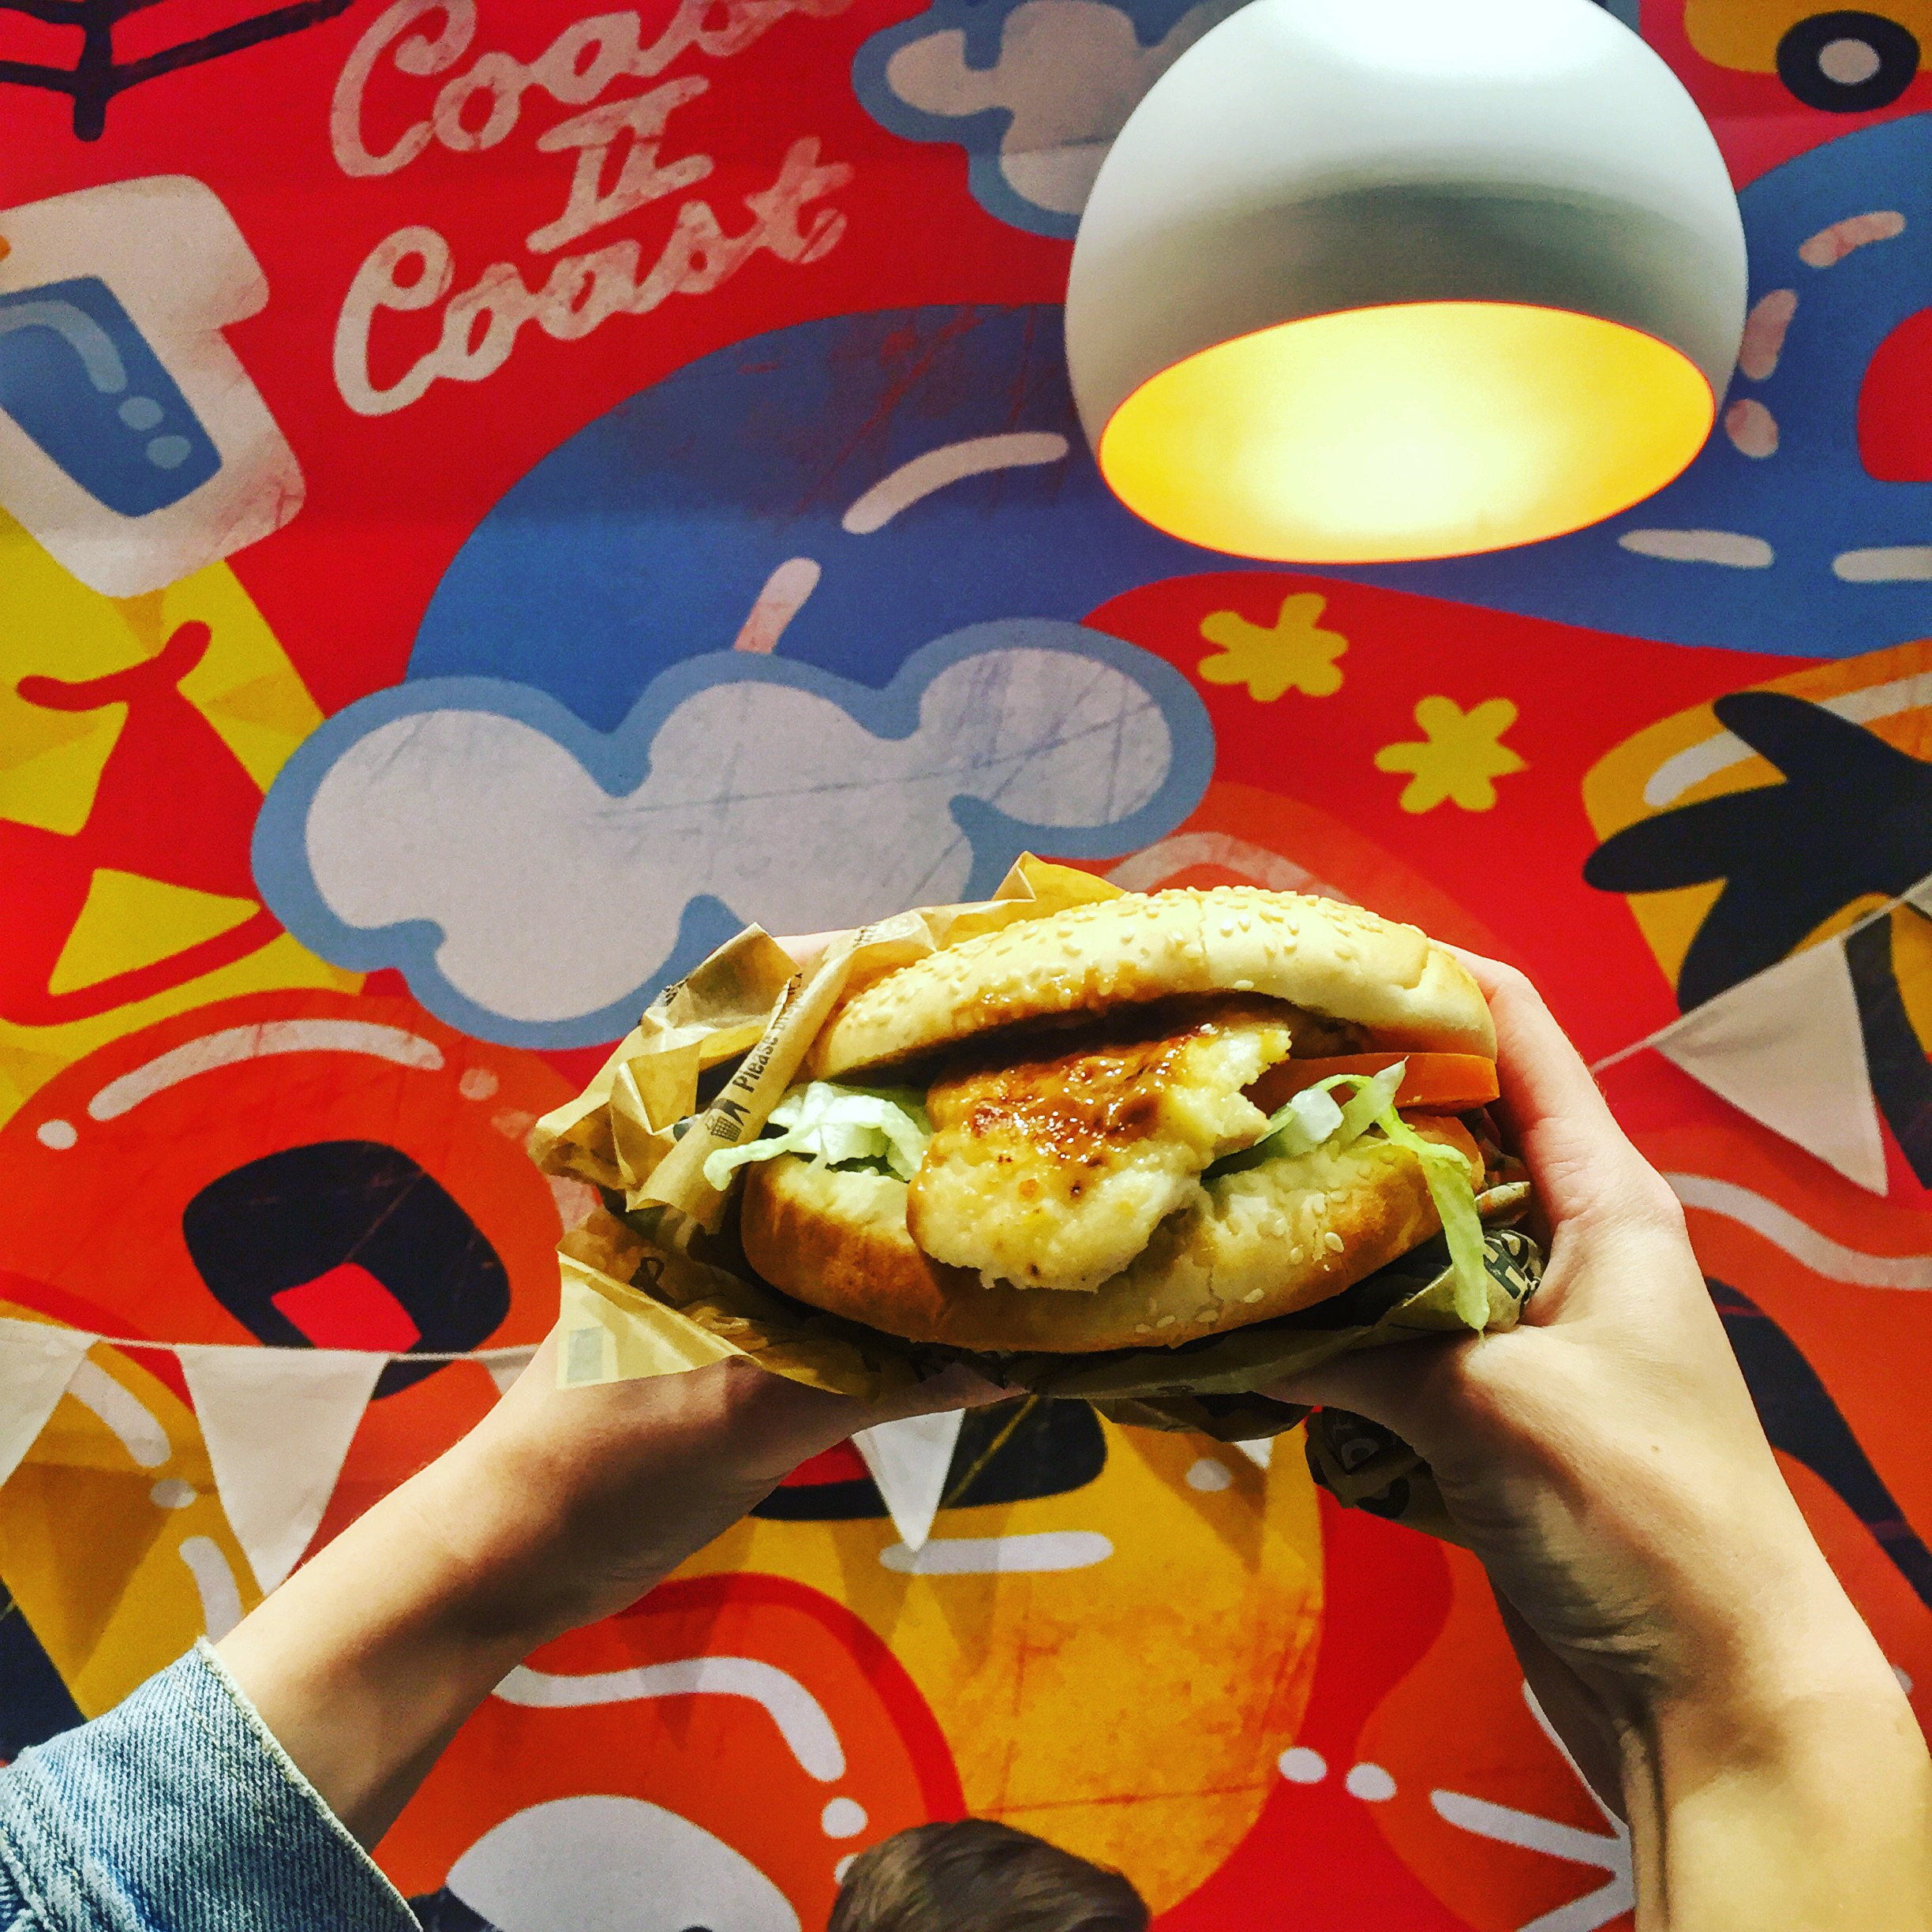 The Double Fillet Oprego Burger - send in the Holy light.